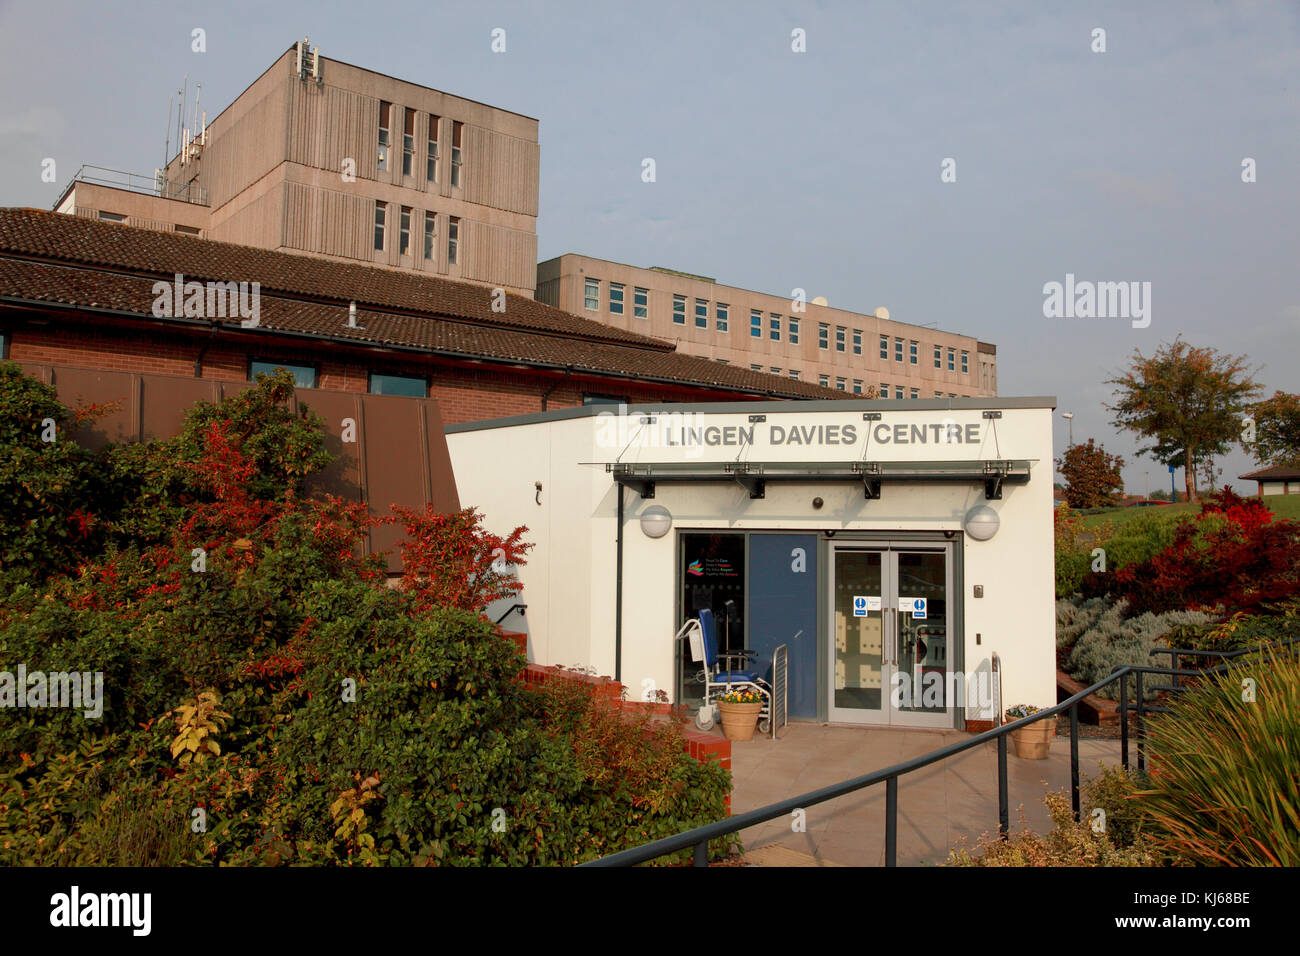 The Lingen Davies Cancer Centre at the NHS Royal Shrewsbury Hospital, a teaching hospital - Stock Image